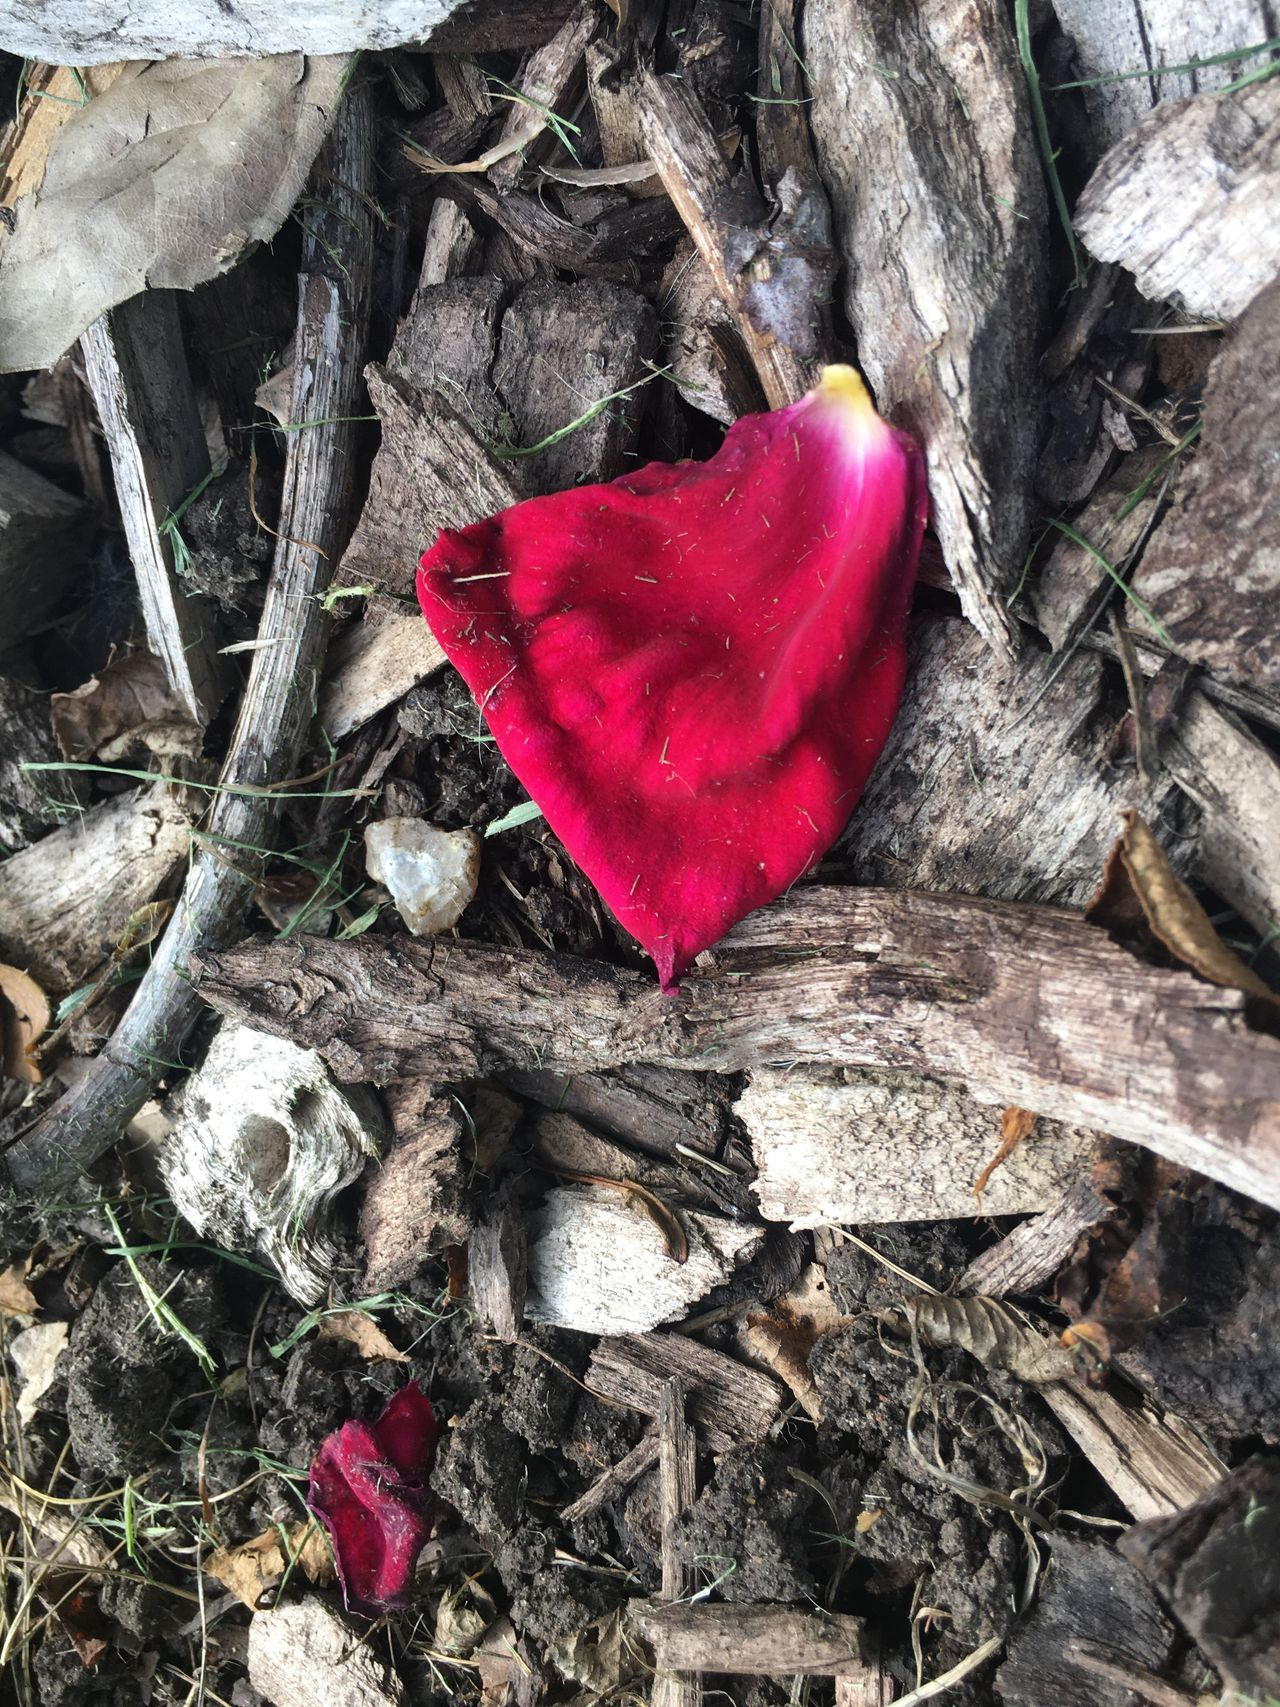 🥀 Petal Beauty Nature Heart Shape Love Red Nature Fragility Flower No People Petal High Angle View Leaf Outdoors Day Beauty In Nature Close-up Rose Petals Flower Head Dead Petals Fallen Petals